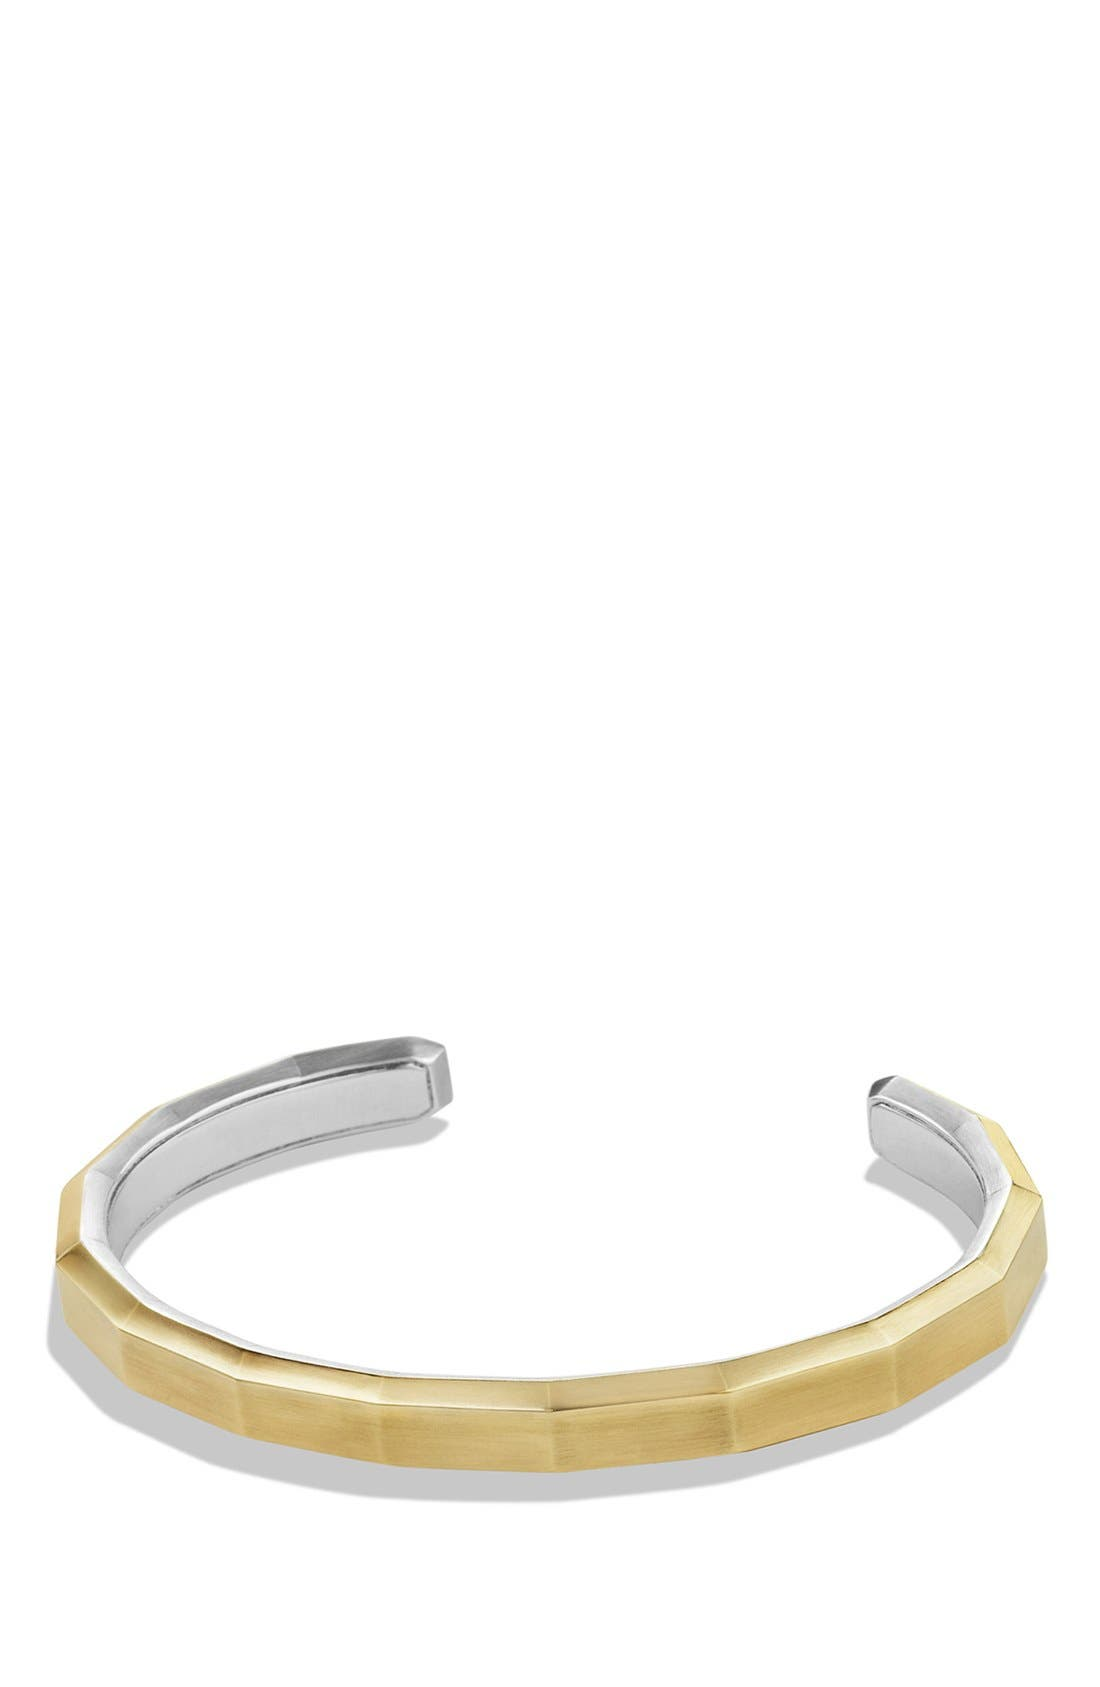 DAVID YURMAN Faceted Metal Cuff Bracelet with 18k Gold